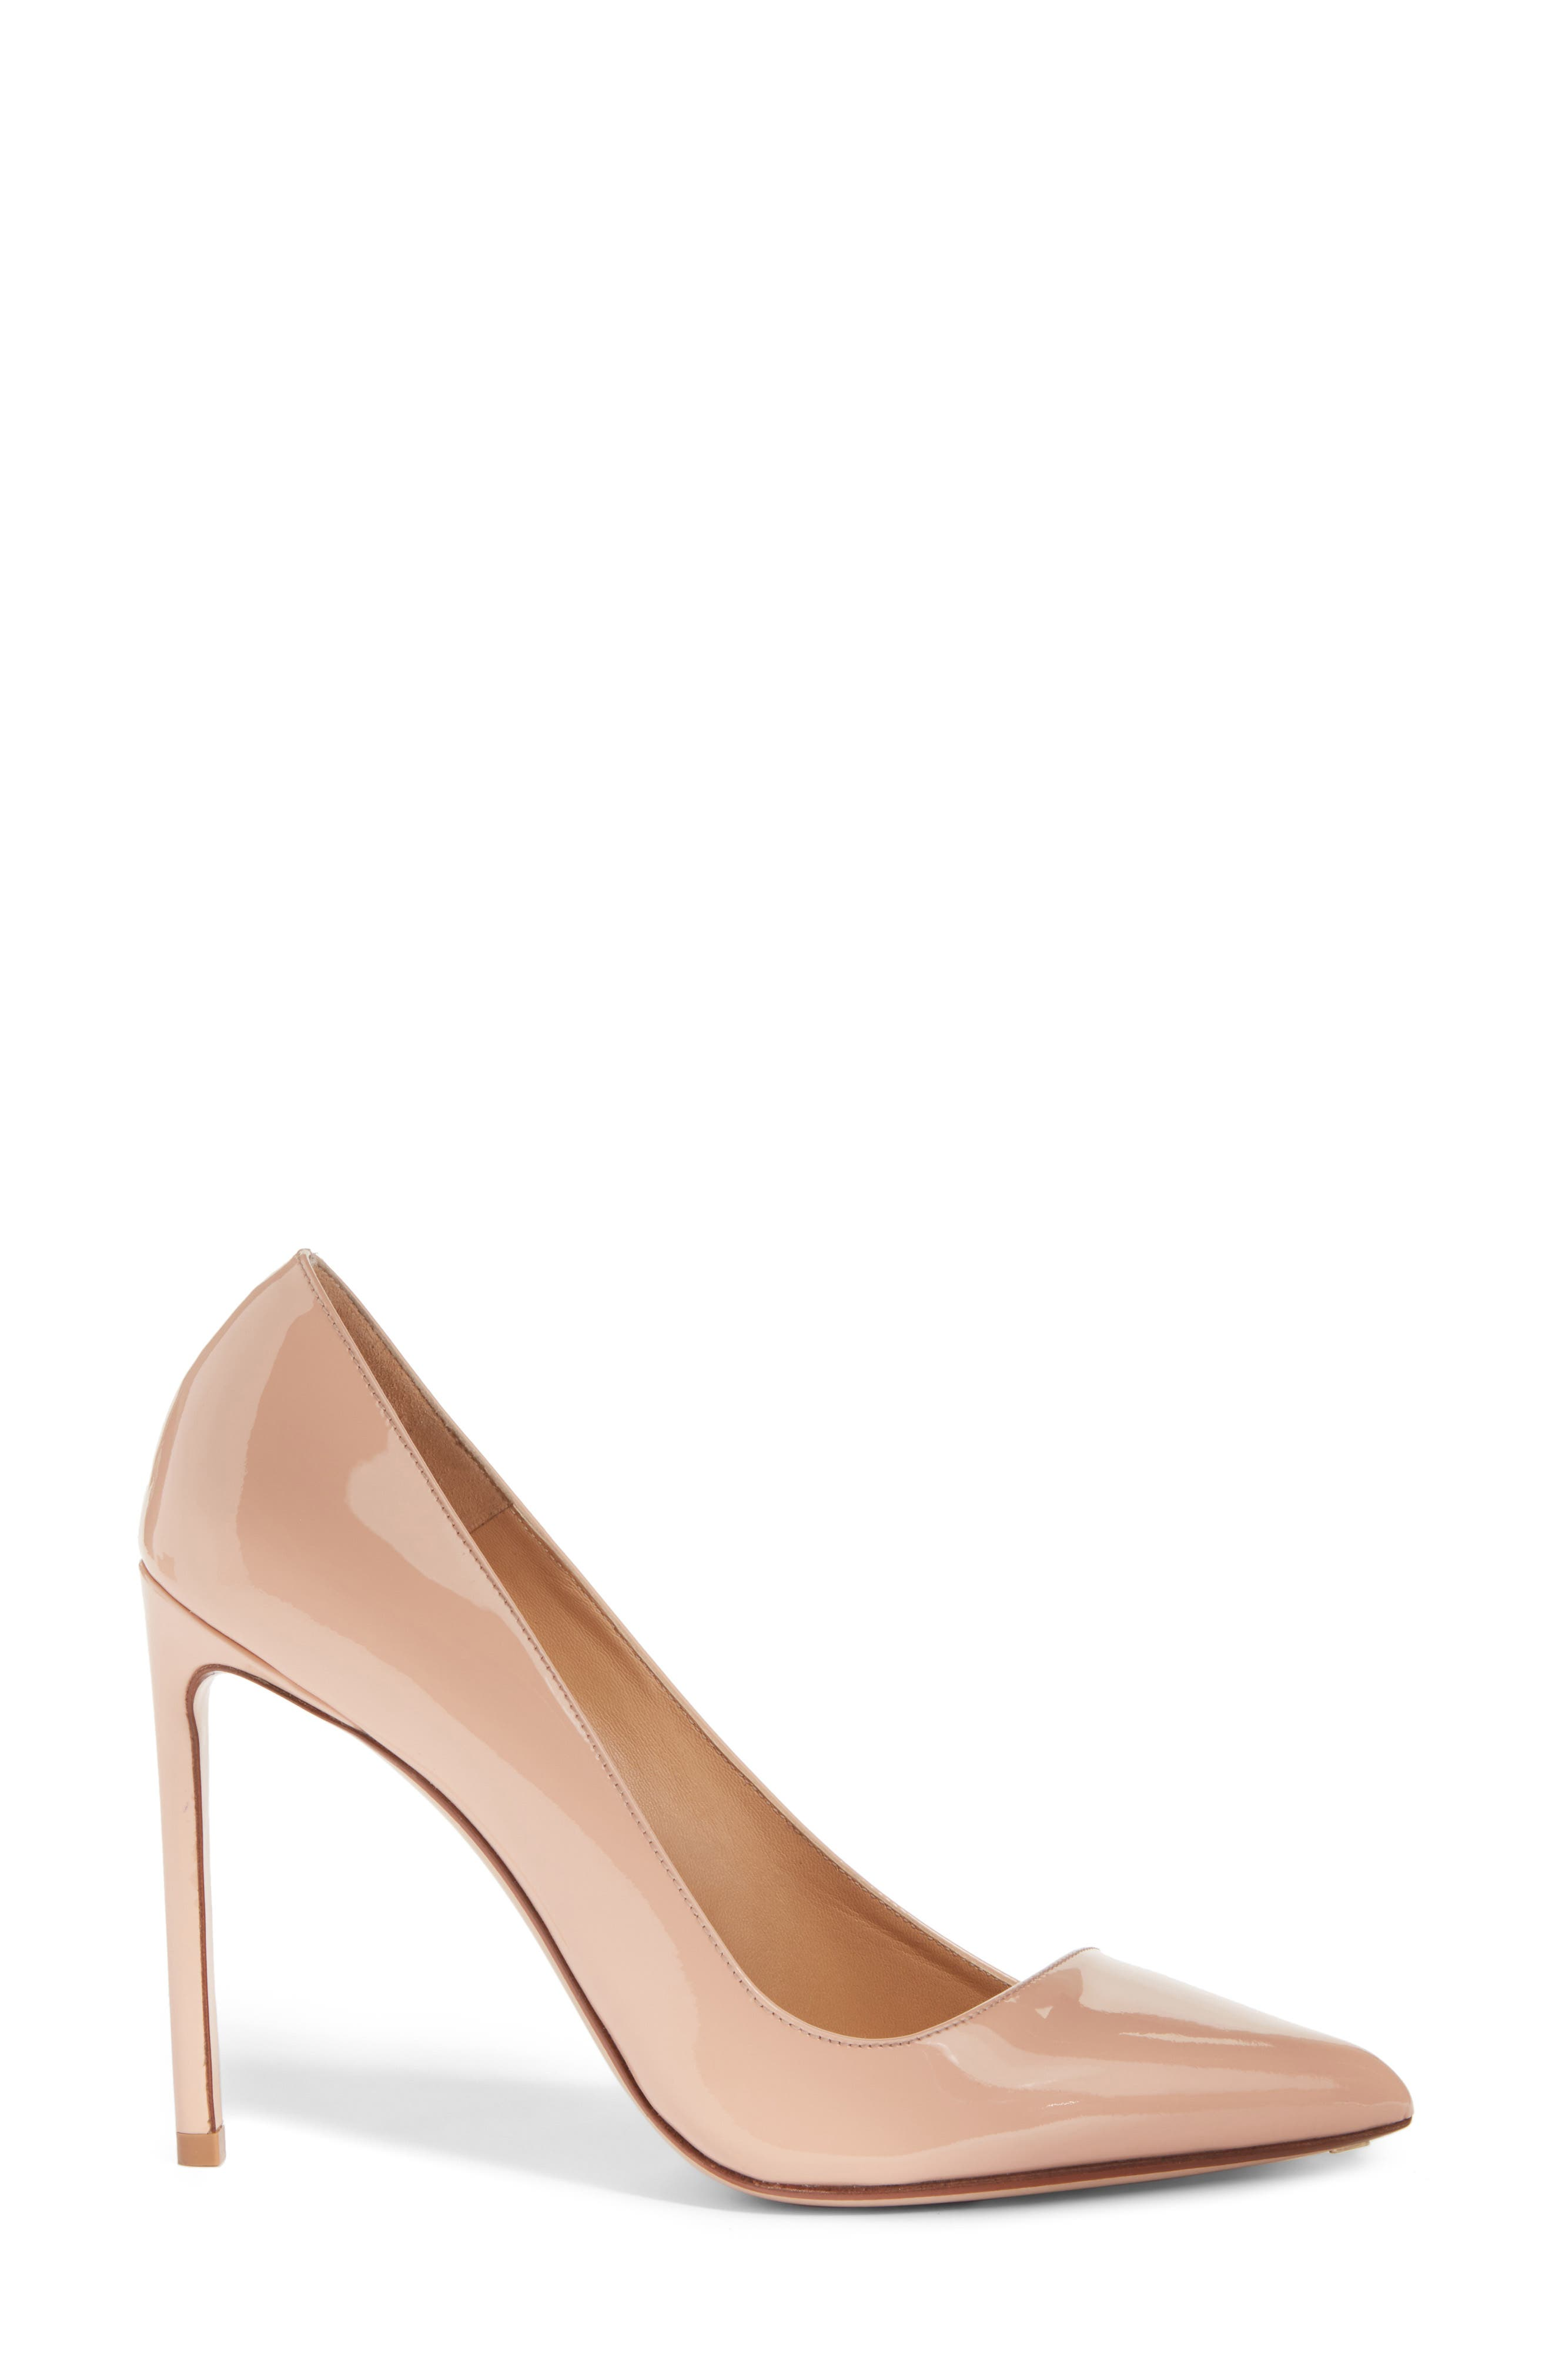 Pointy Toe Pump,                             Alternate thumbnail 3, color,                             250